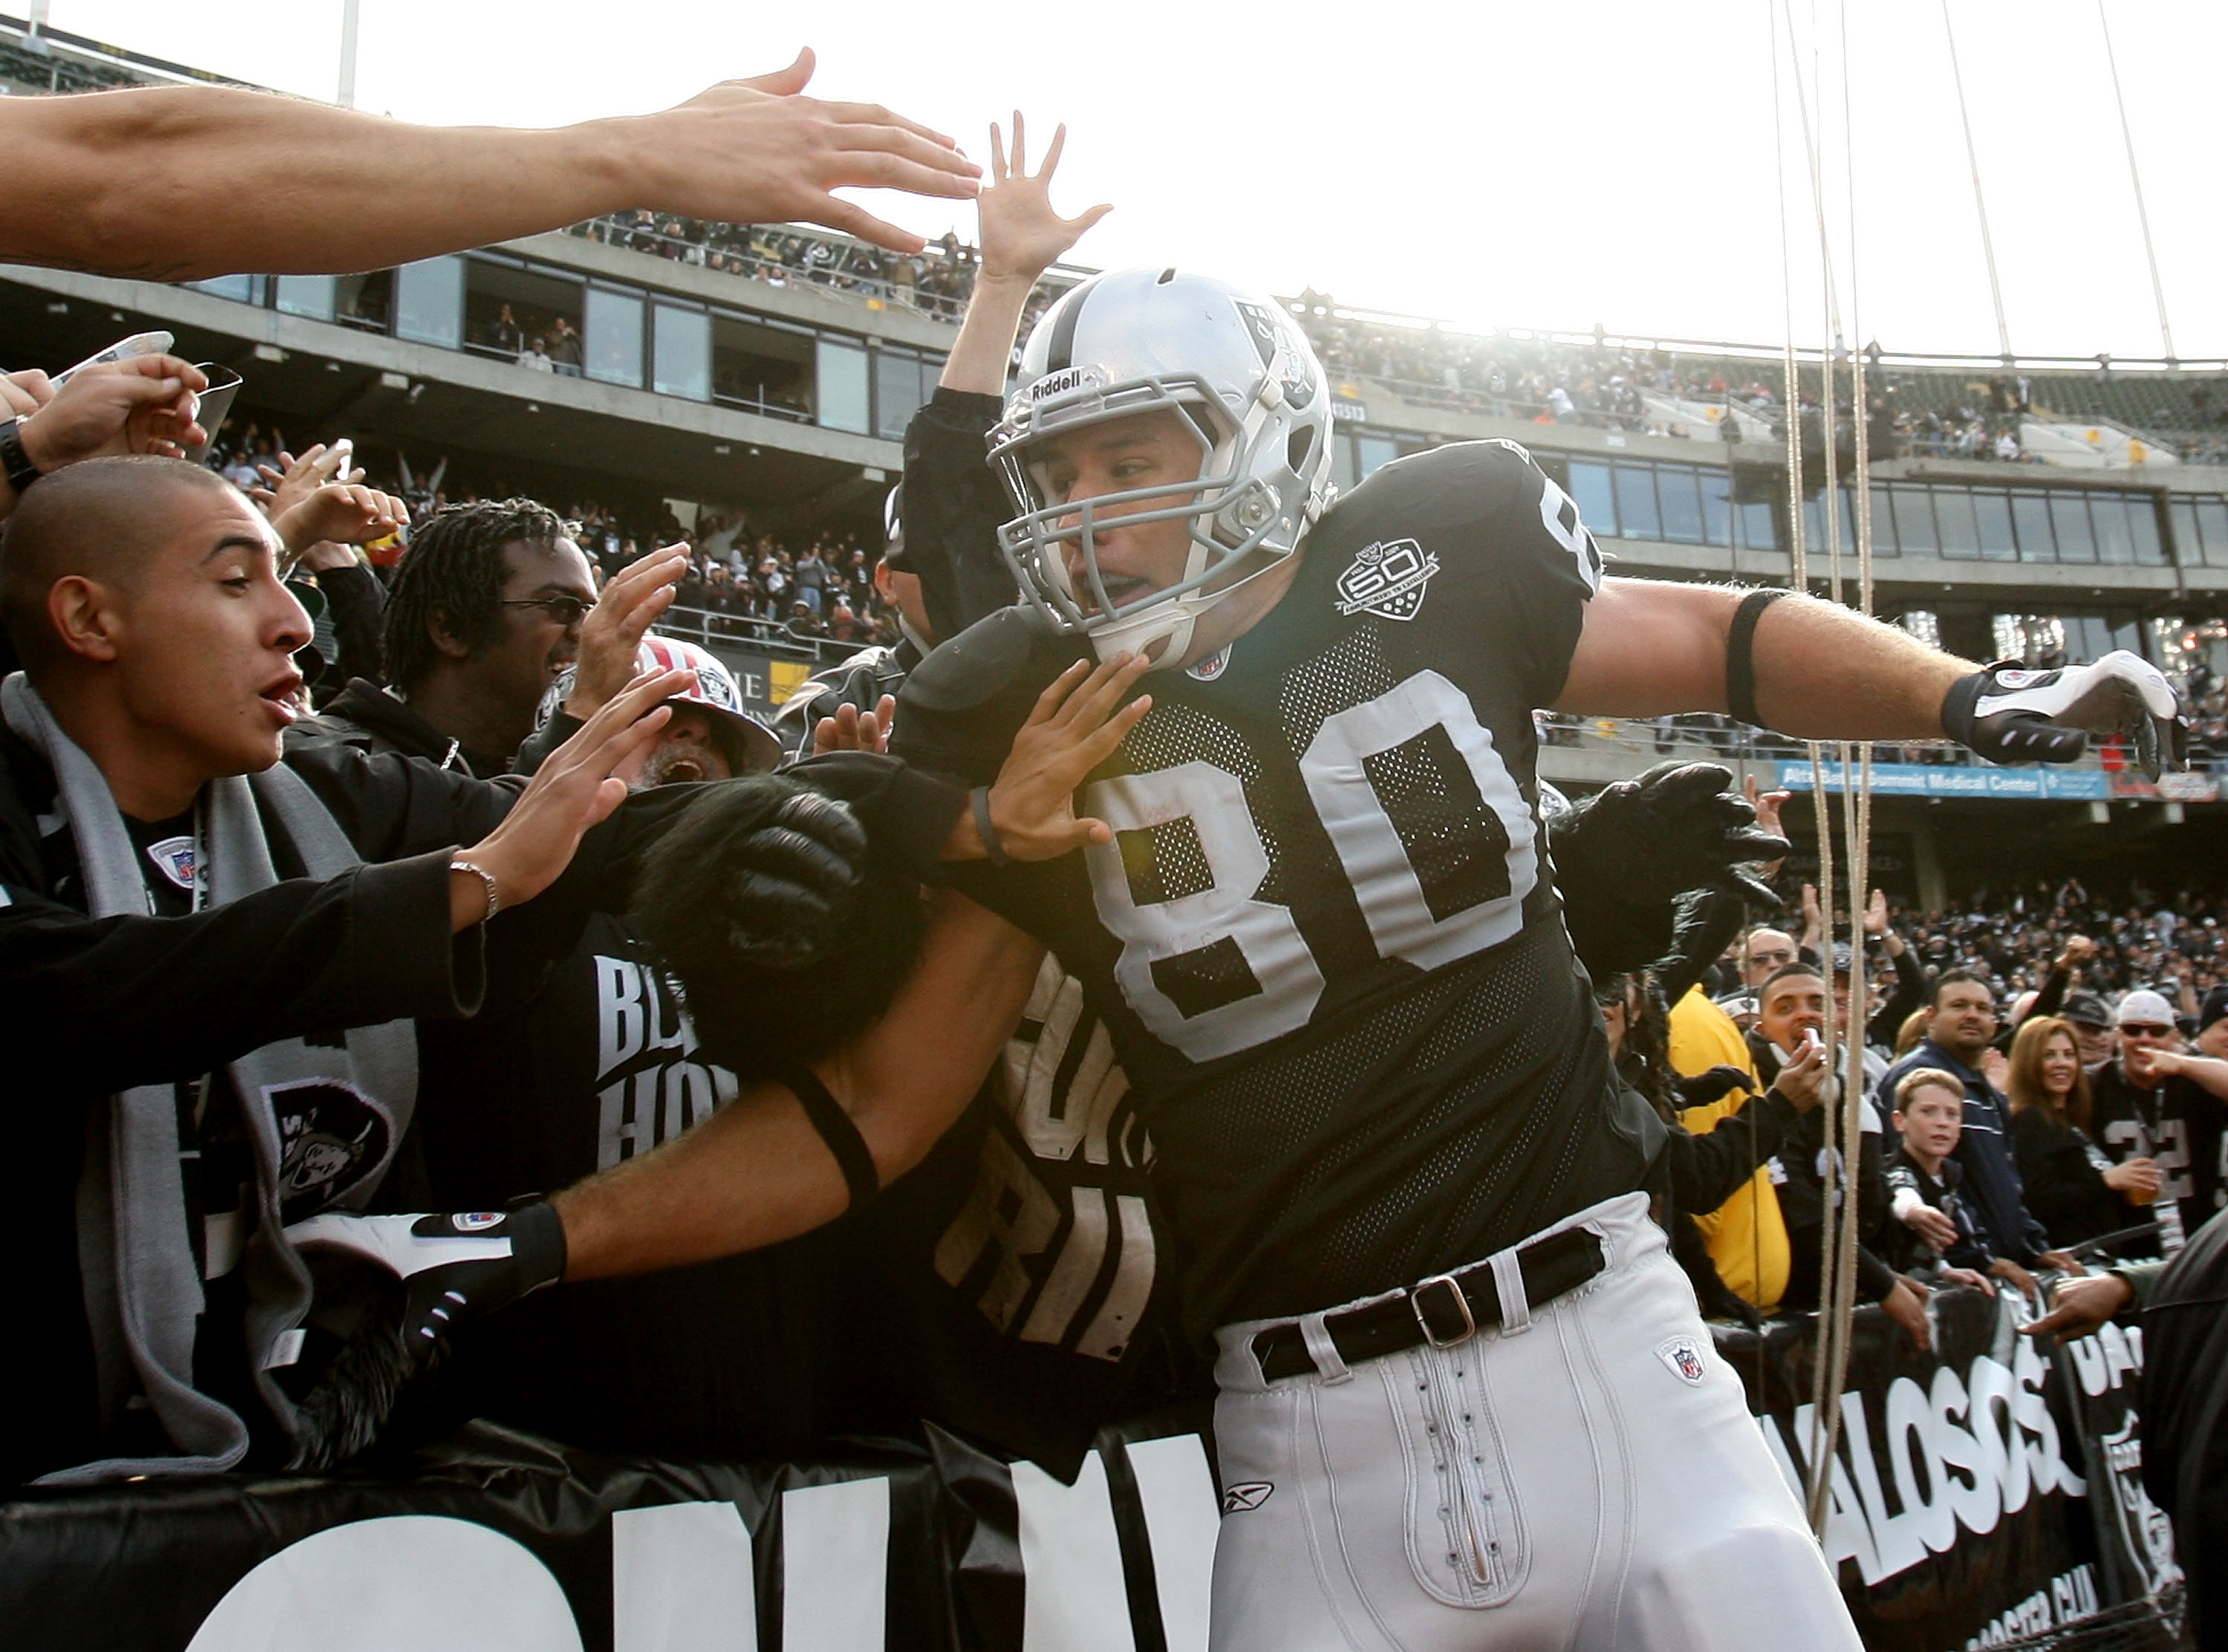 OAKLAND, CA - NOVEMBER 22:  Zach Miller #80 of the Oakland Raiders celebrates after scoring a touchdown in the second quarter against the Cincinnati Bengals during an NFL game at Oakland-Alameda County Coliseum on November 22, 2009 in Oakland, California.